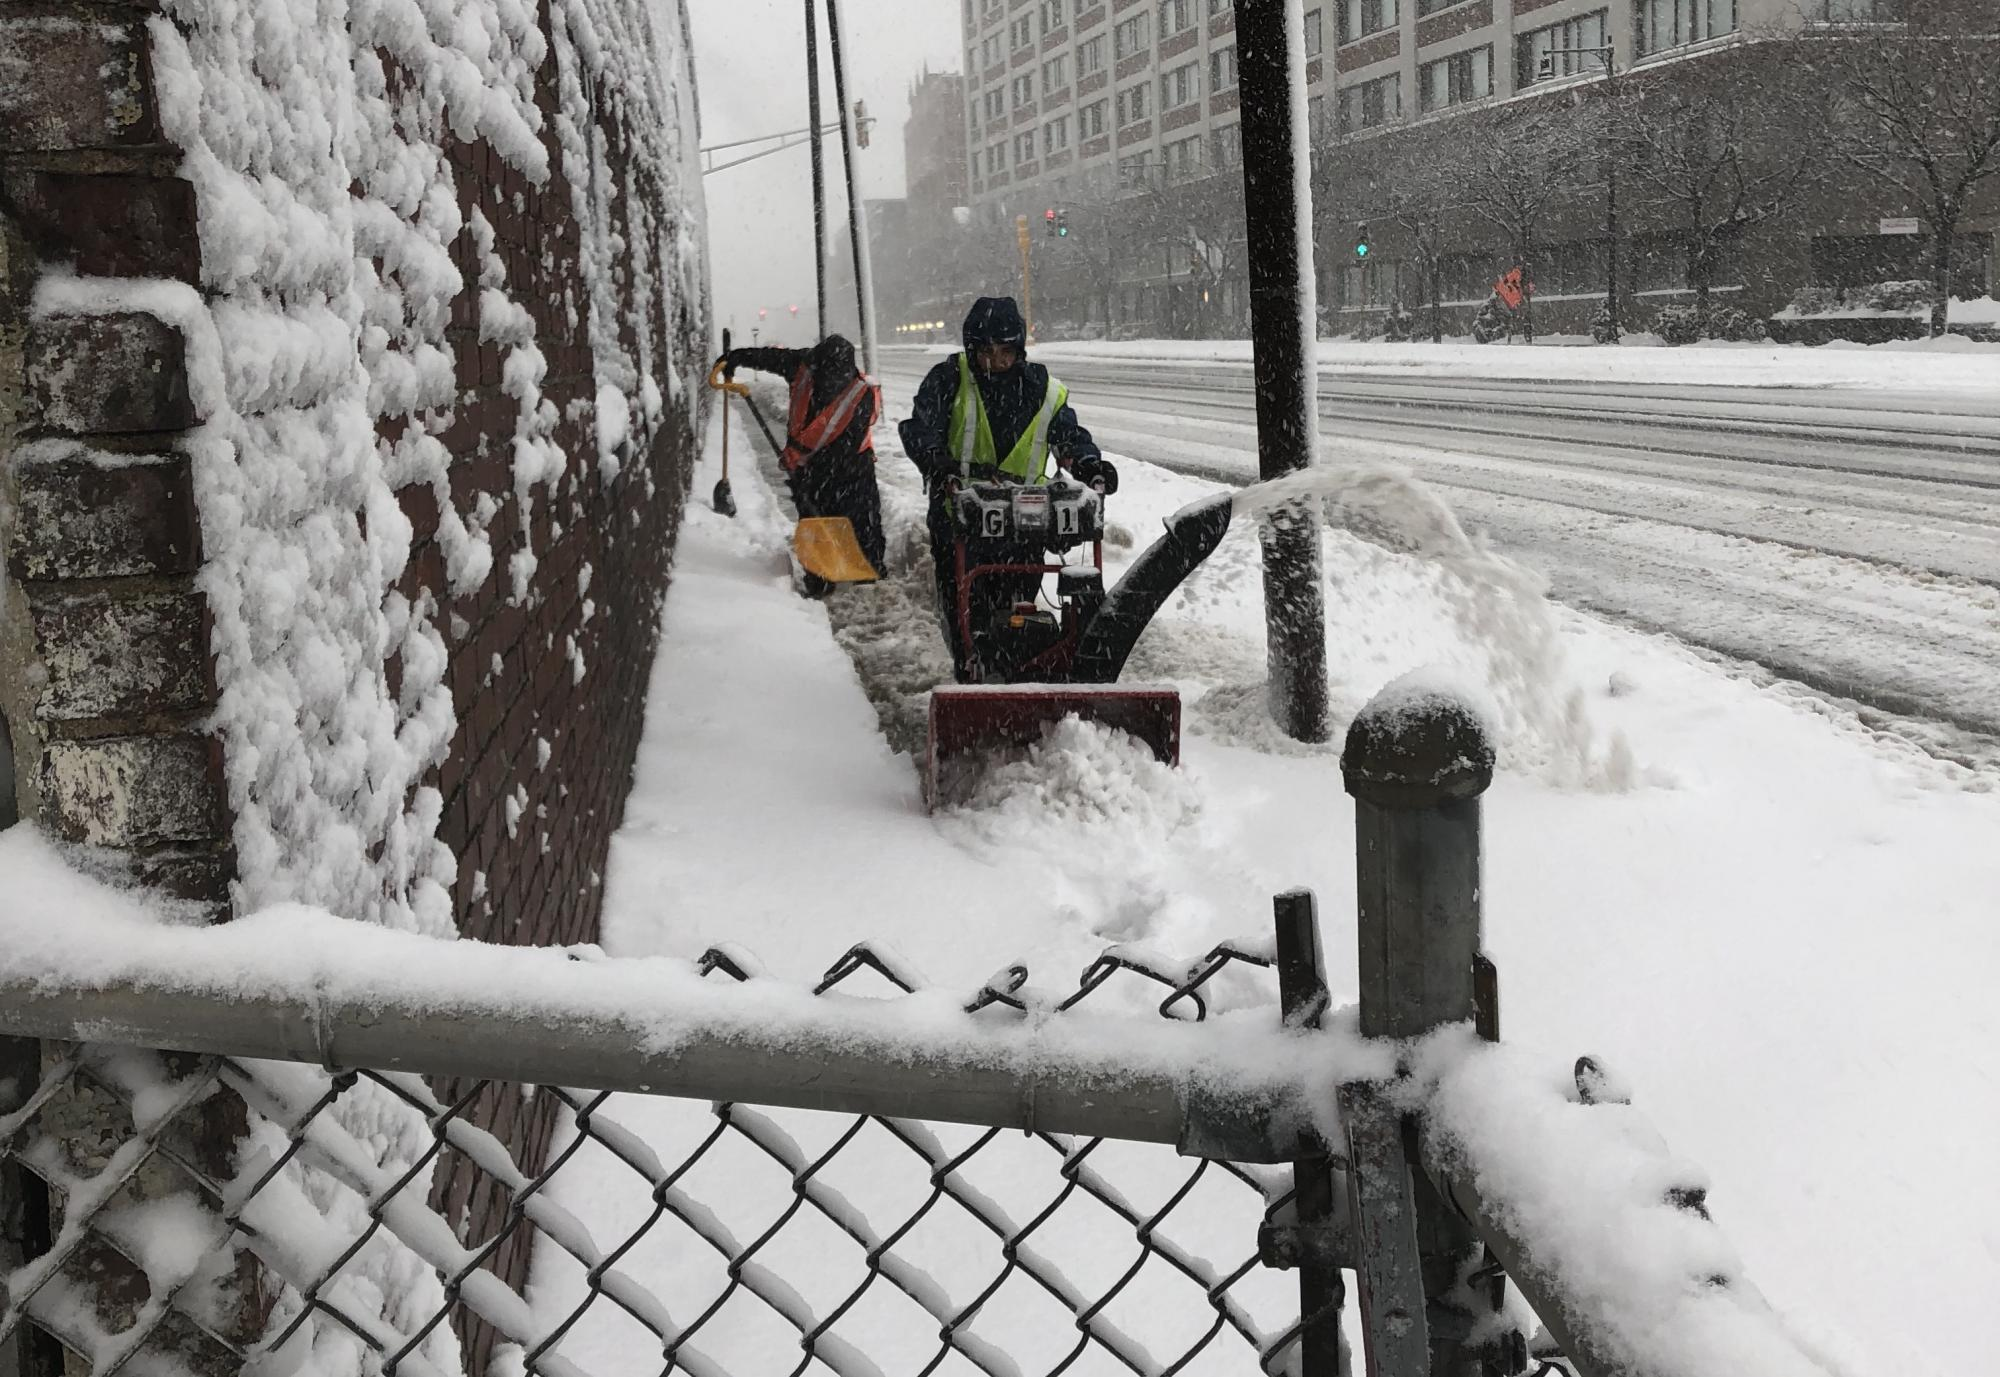 Two crew people on the sidewalk. The one in the back uses a shovel, while the one in the front uses a snow blower.